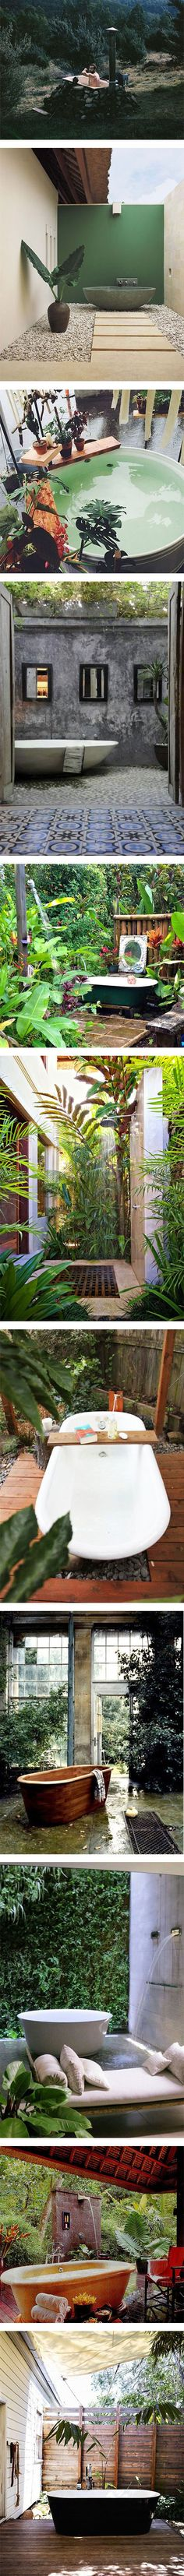 10 amazing outdoor baths we'd love to have